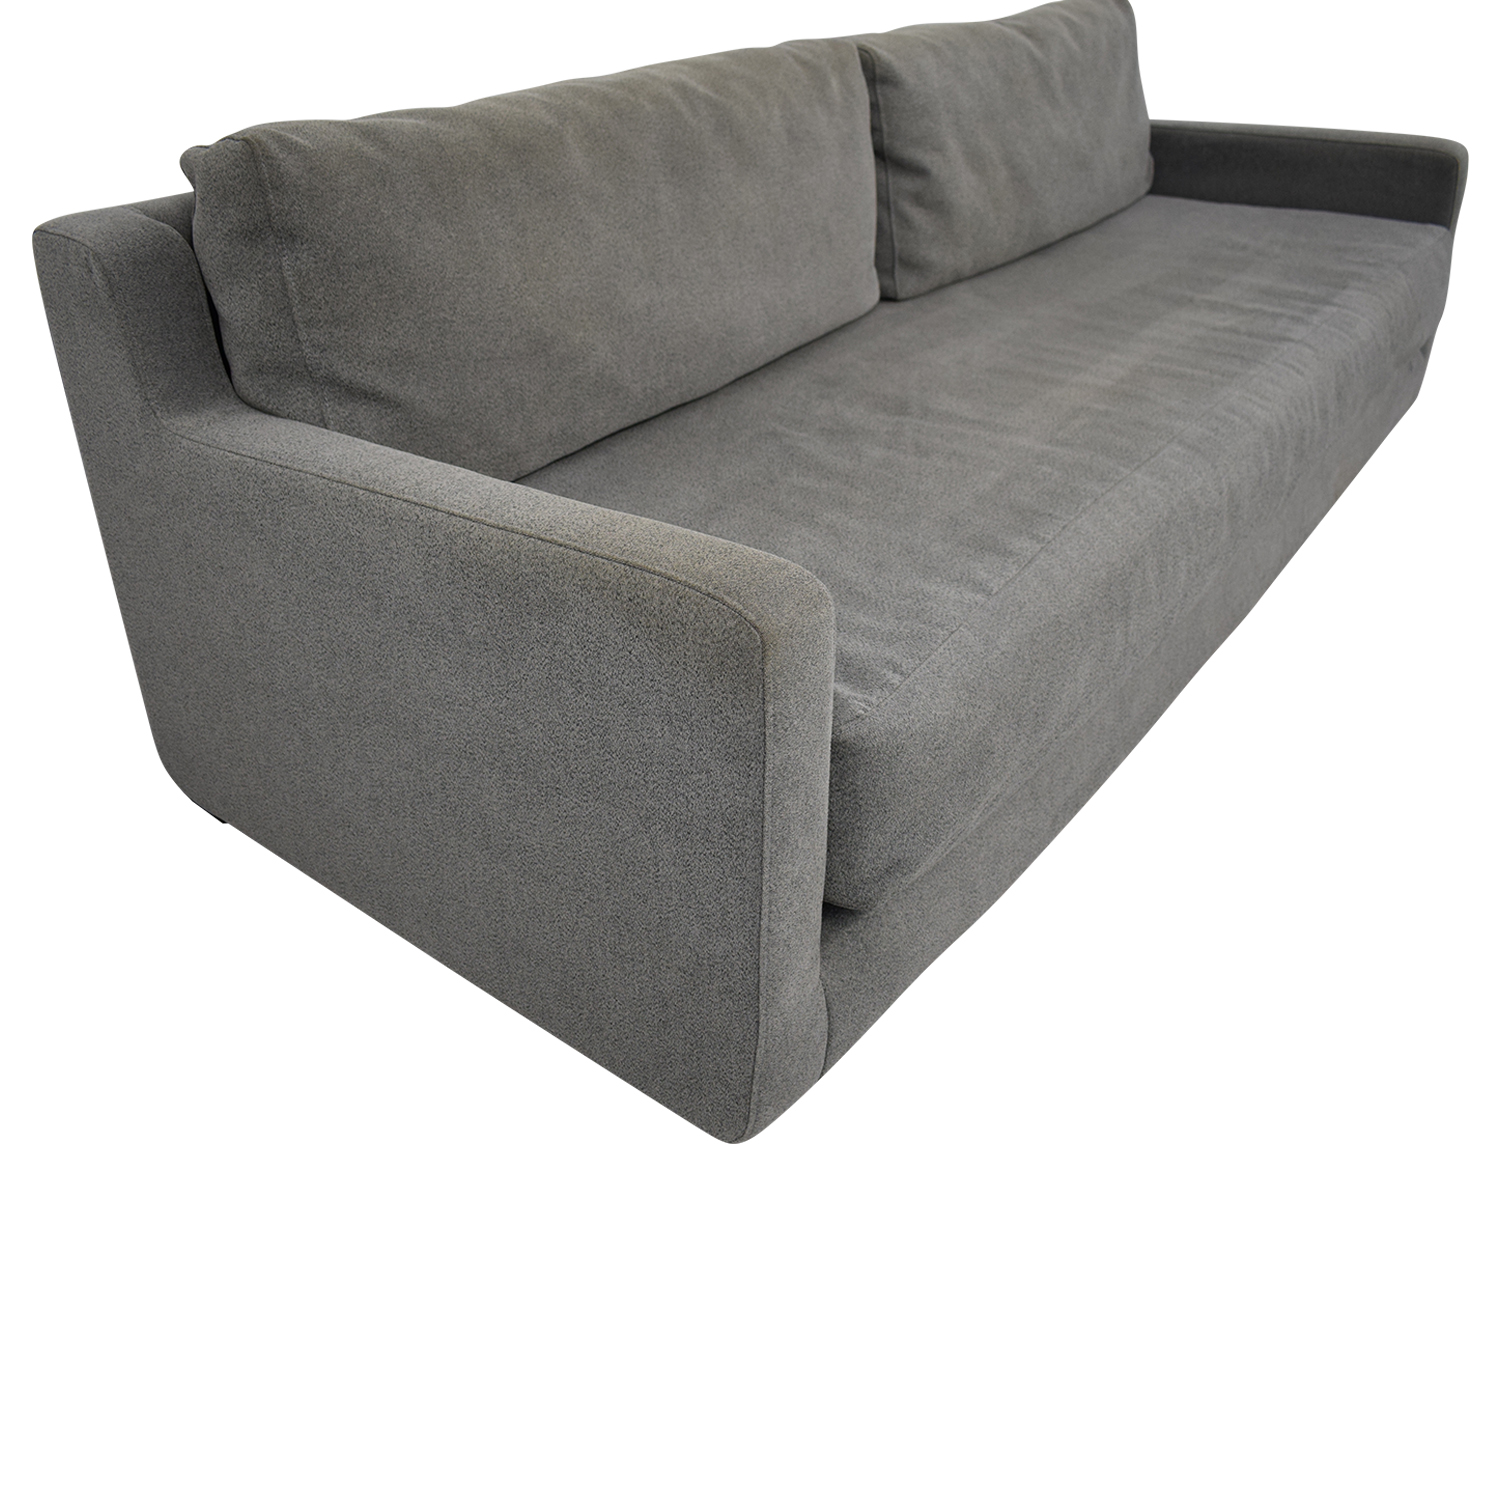 Gus Modern Fabric Sleeper Sofa / Sofas